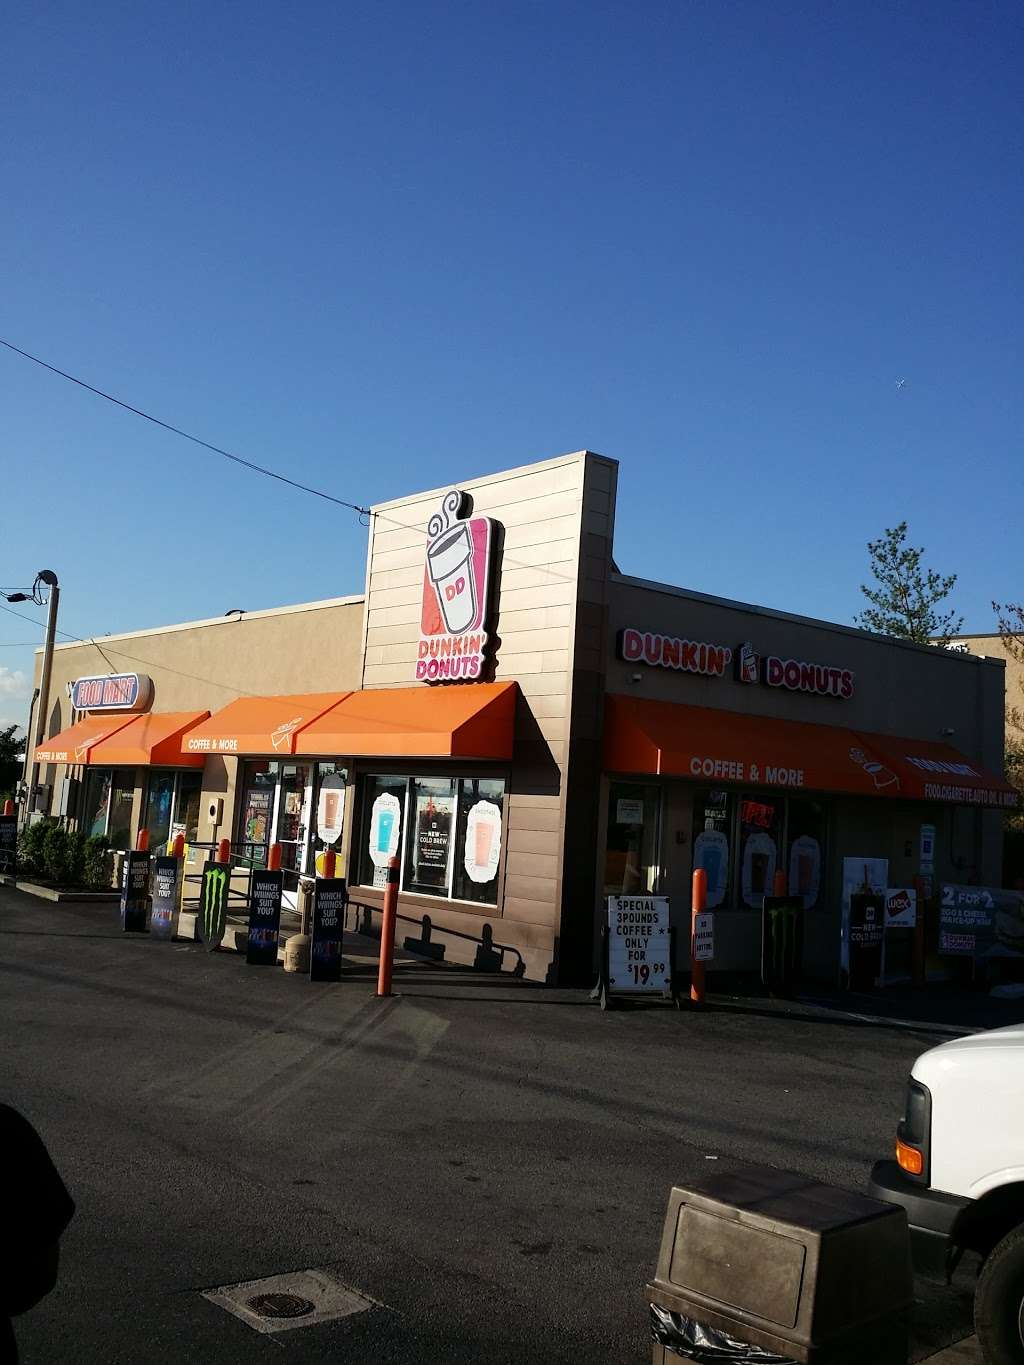 Dunkin Donuts - cafe  | Photo 2 of 7 | Address: 758 Paterson Plank Rd, East Rutherford, NJ 07073, USA | Phone: (201) 438-4100